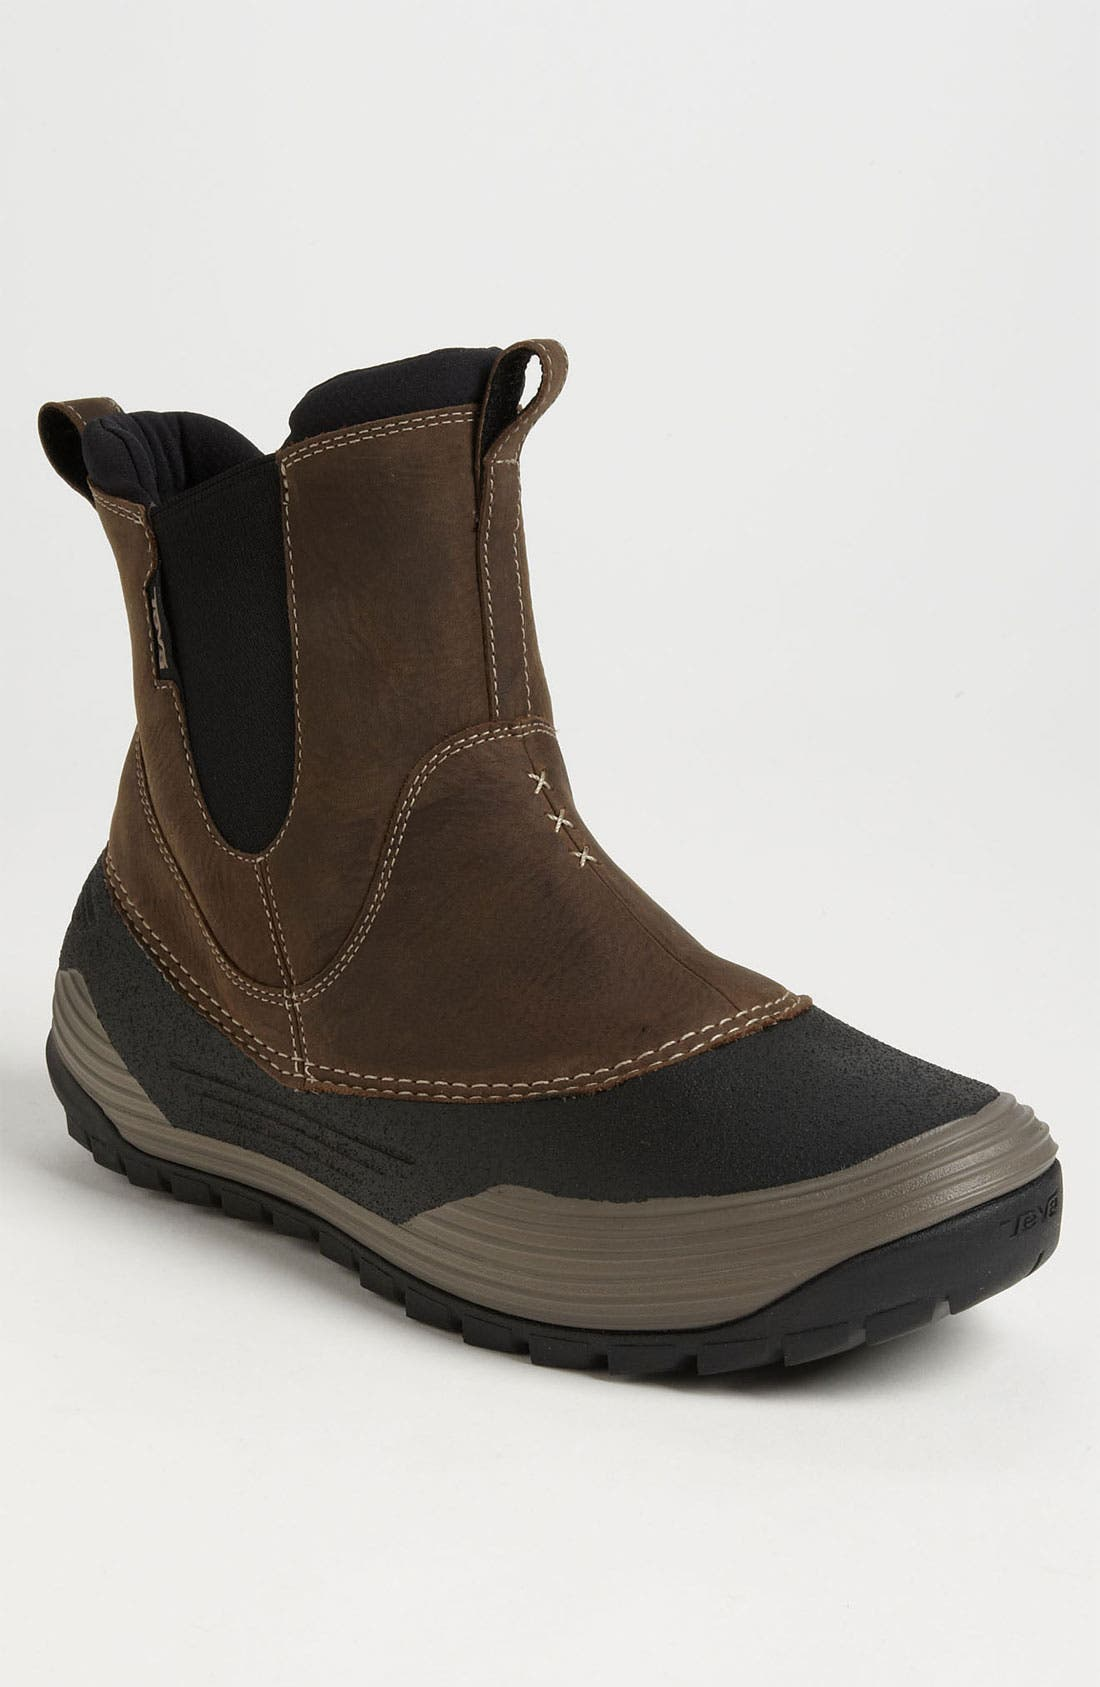 Main Image - Teva 'Loge Peak' Snow Boot (Online Only)